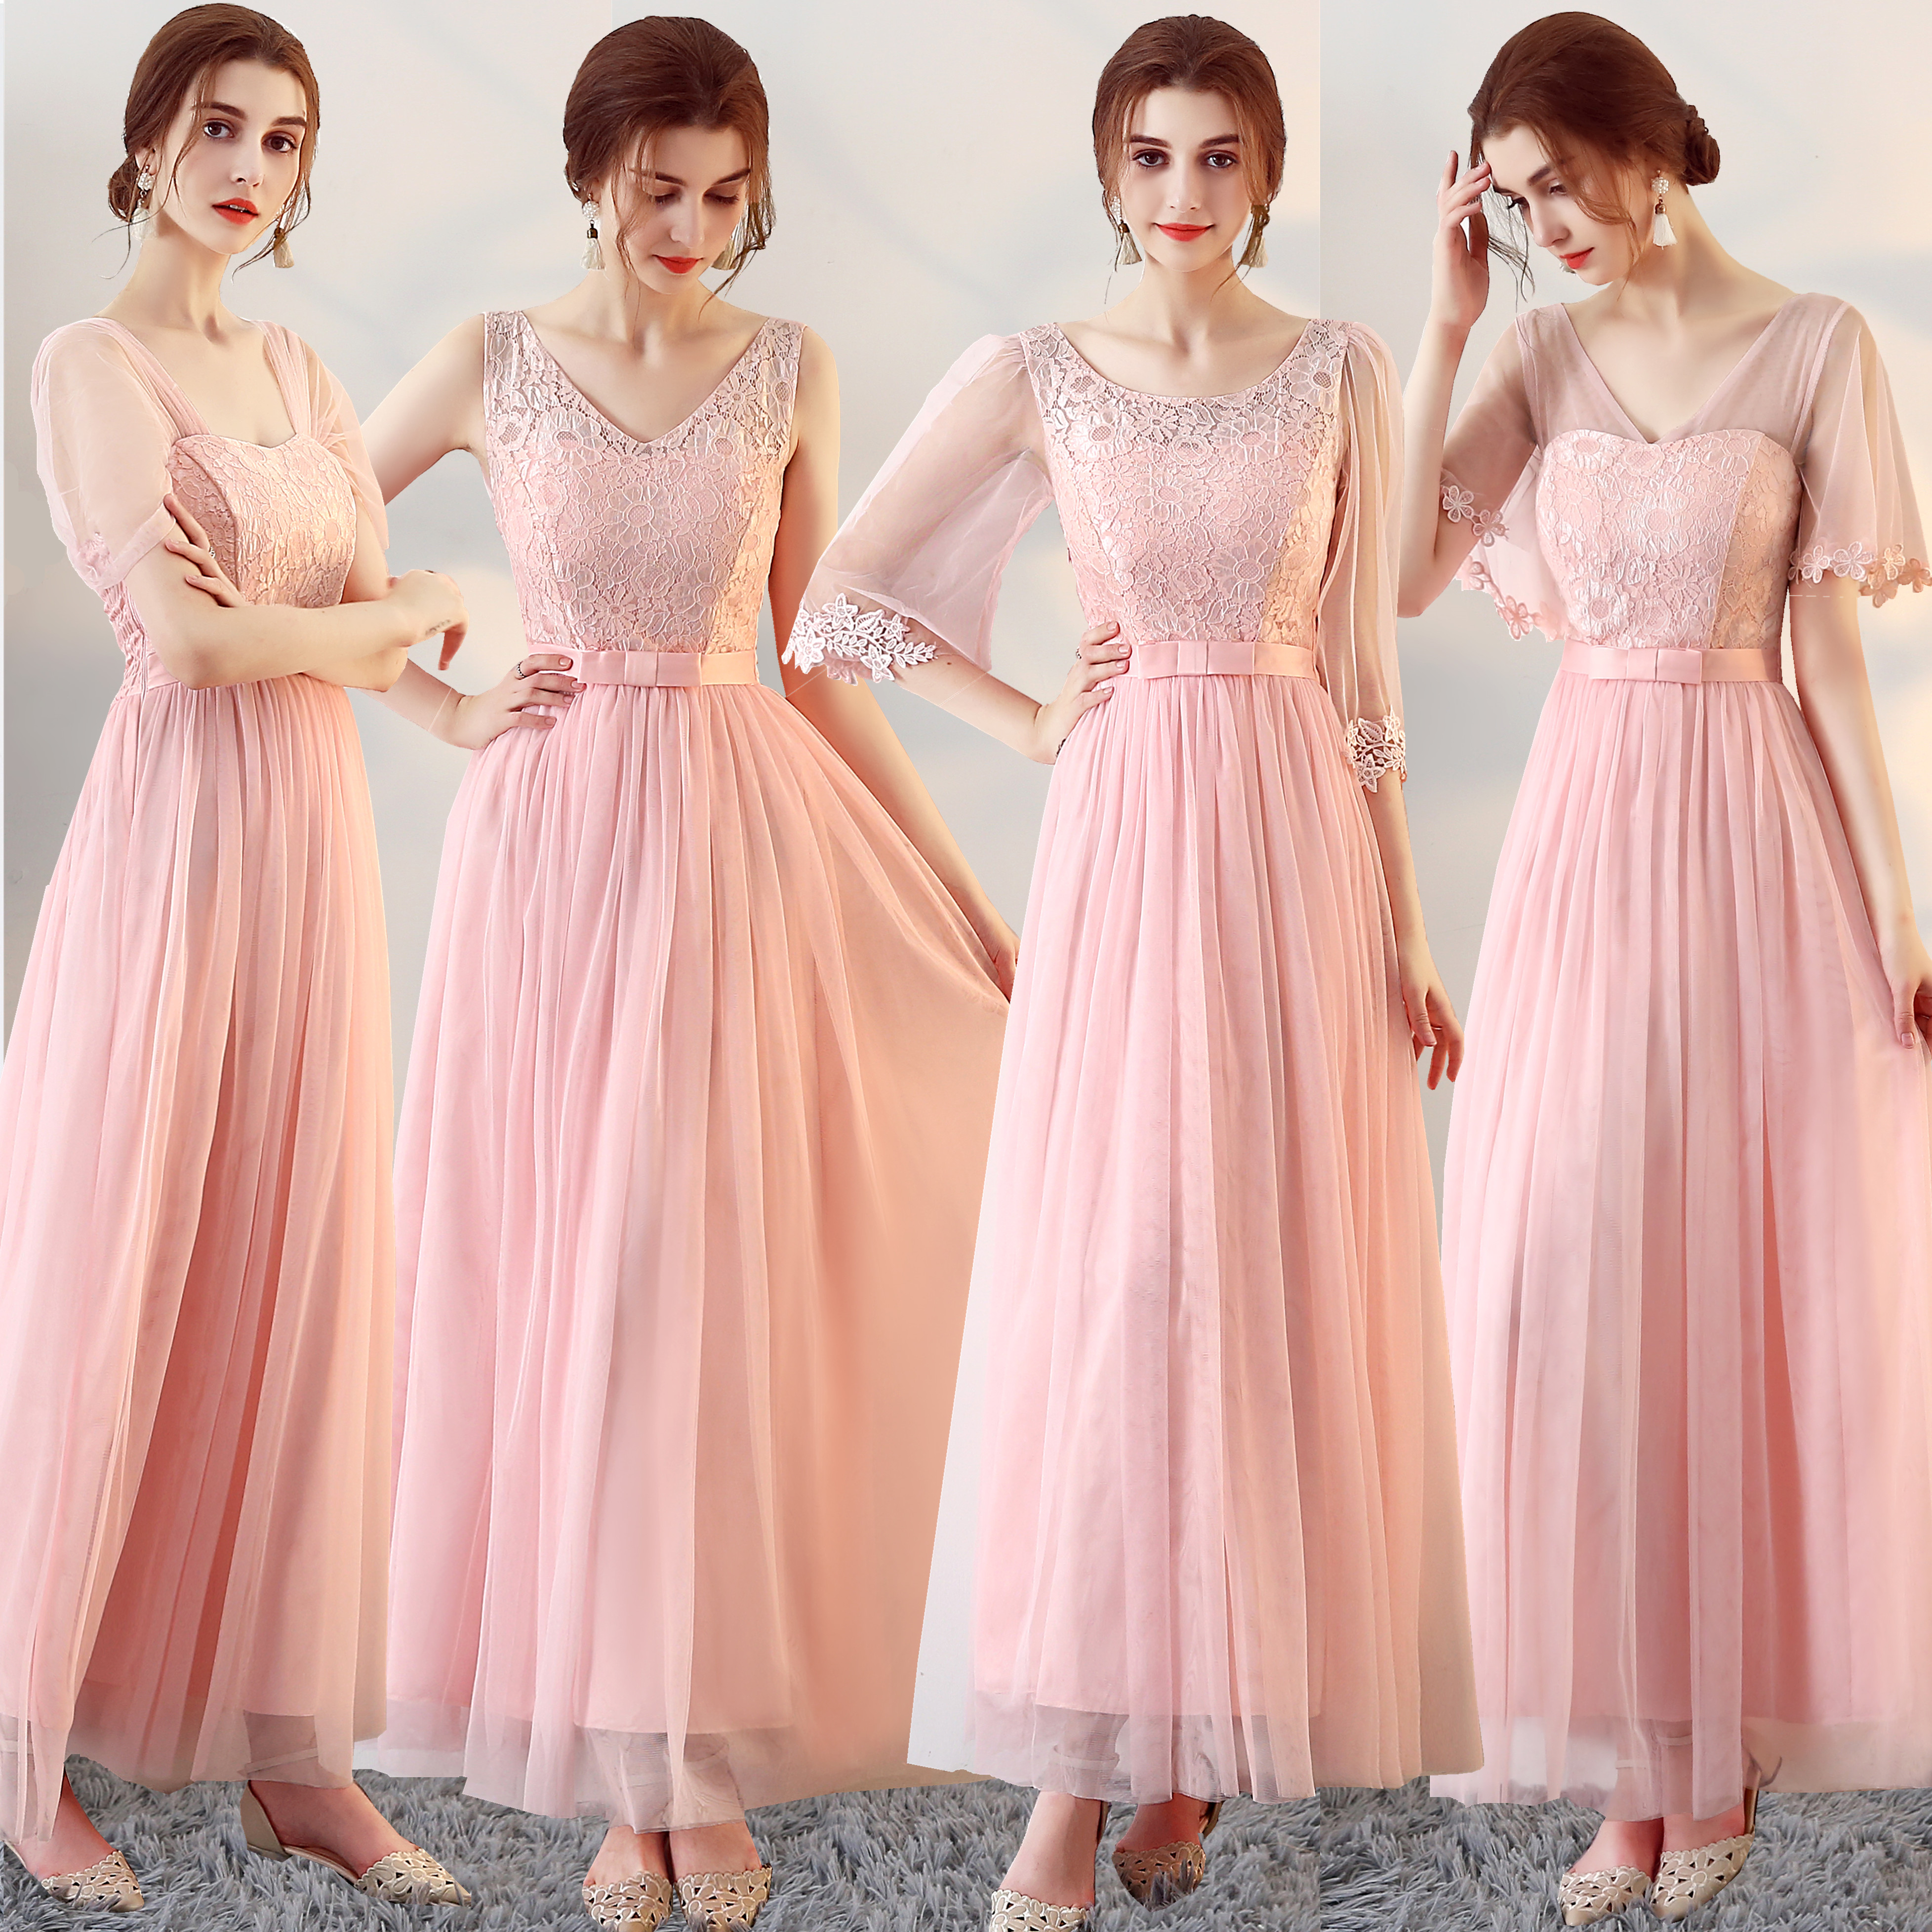 Long Pink Bridesmaid Dresses A-Line V-Neck Homecoming Prom Wedding Party Dress SW0025